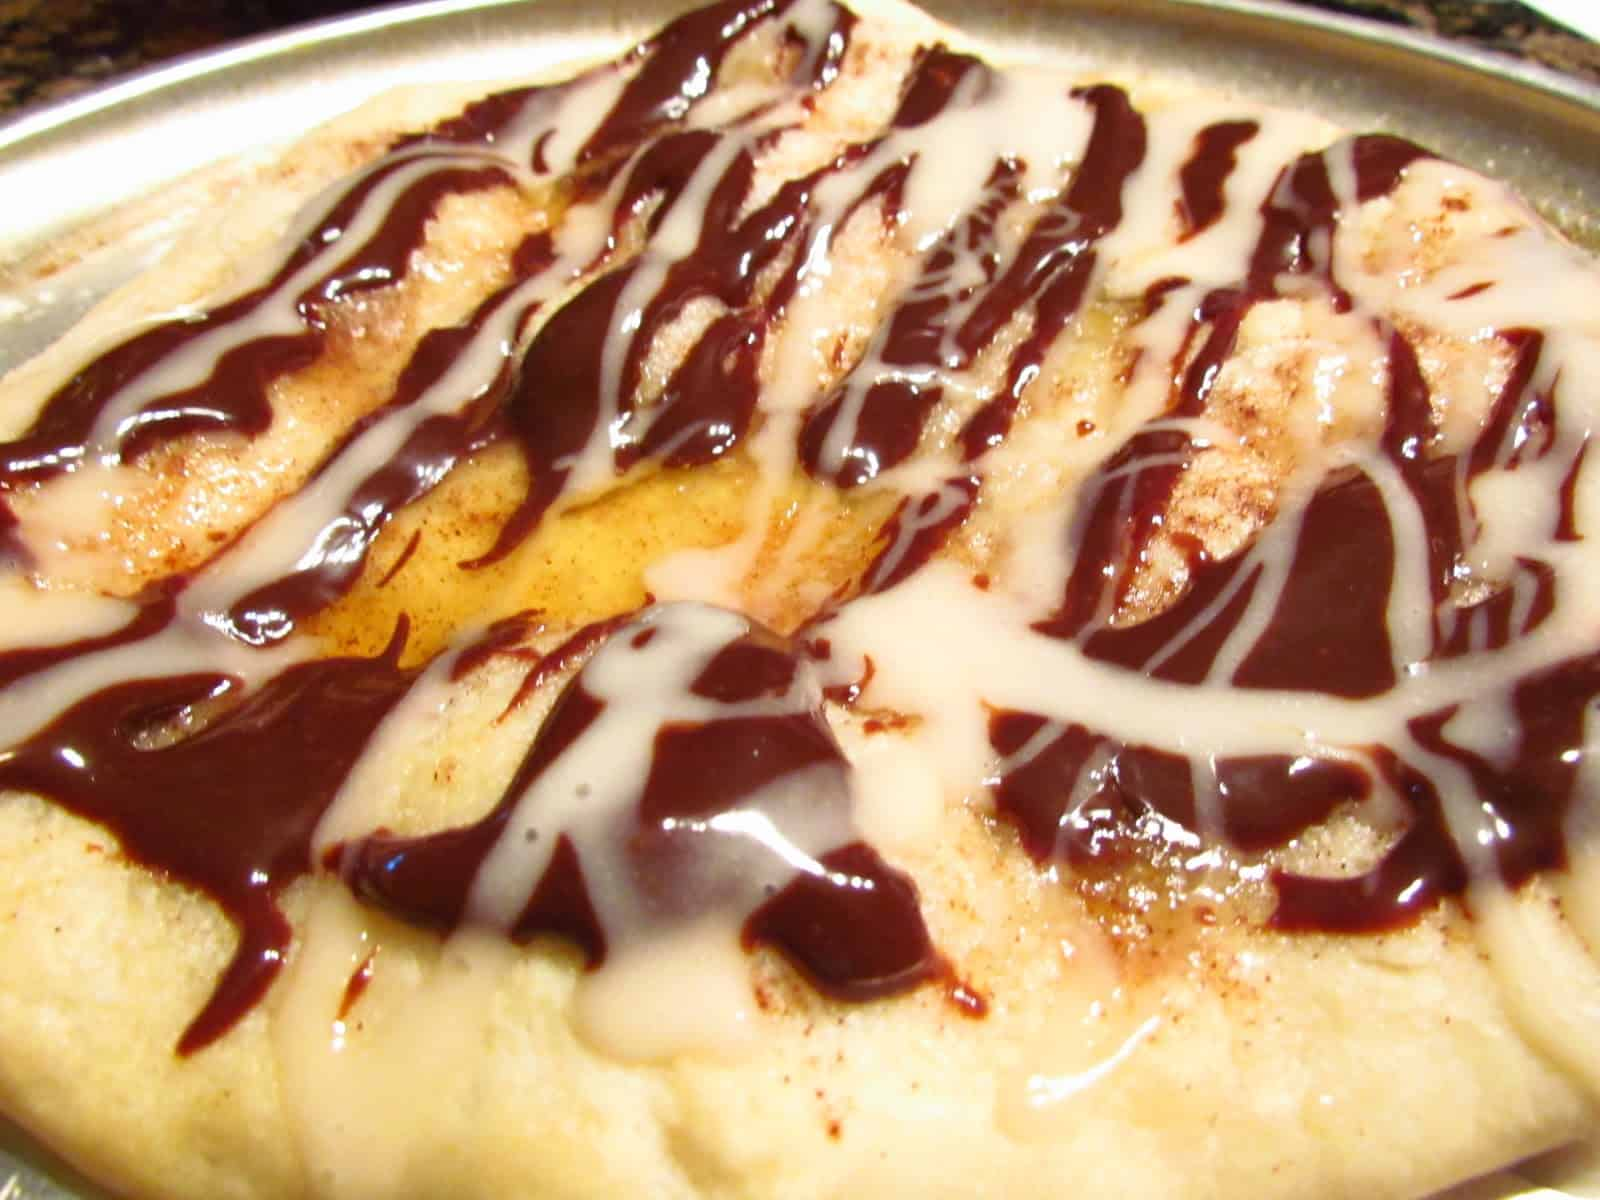 Melted butter and chocolate sauce dessert pizza